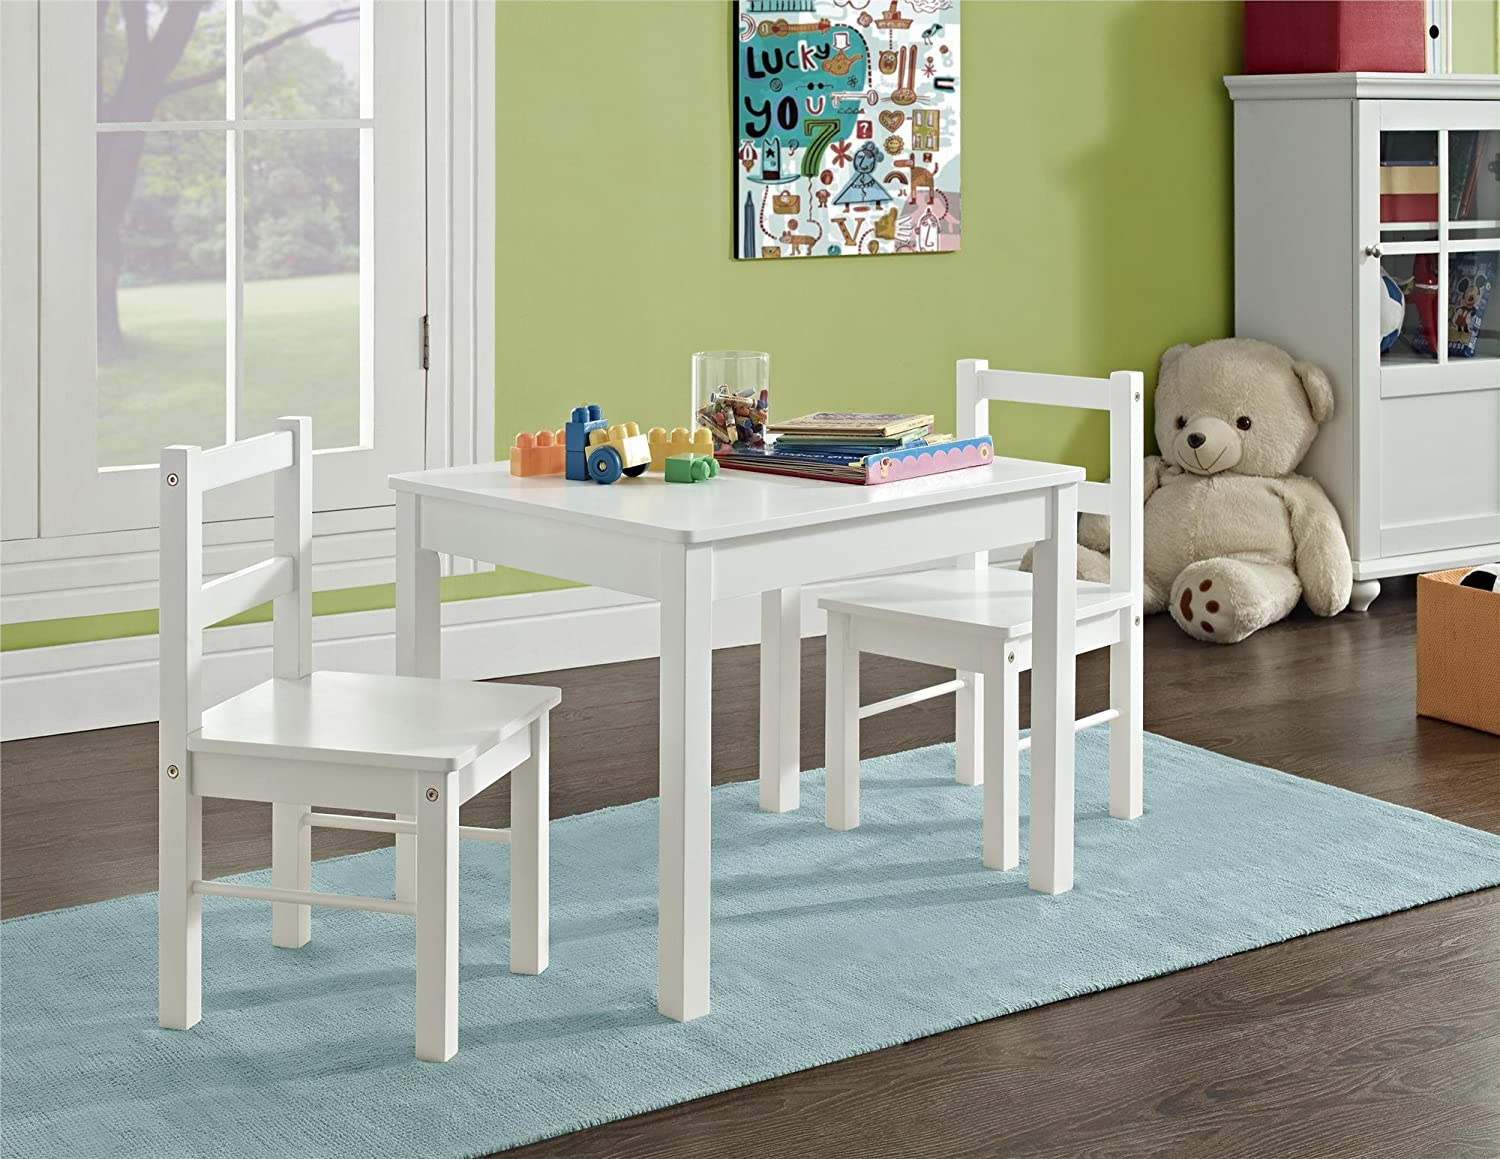 Amazon.com Ameriwood Home Hazel Kid\u0027s Table and Chairs Set White Kitchen \u0026 Dining & Amazon.com: Ameriwood Home Hazel Kid\u0027s Table and Chairs Set White ...